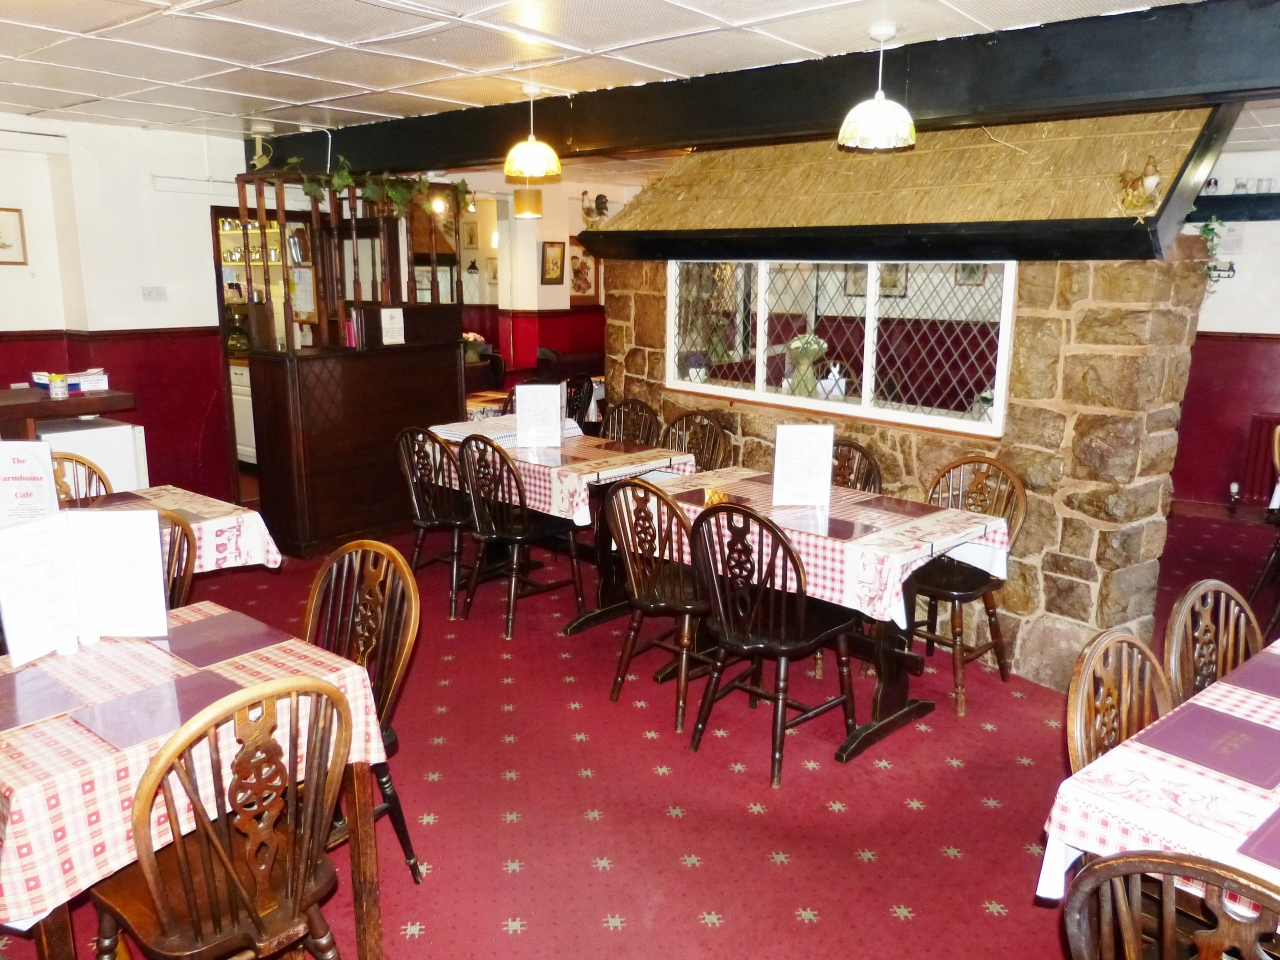 Restaurant For Sale in Abergele - Photograph 2